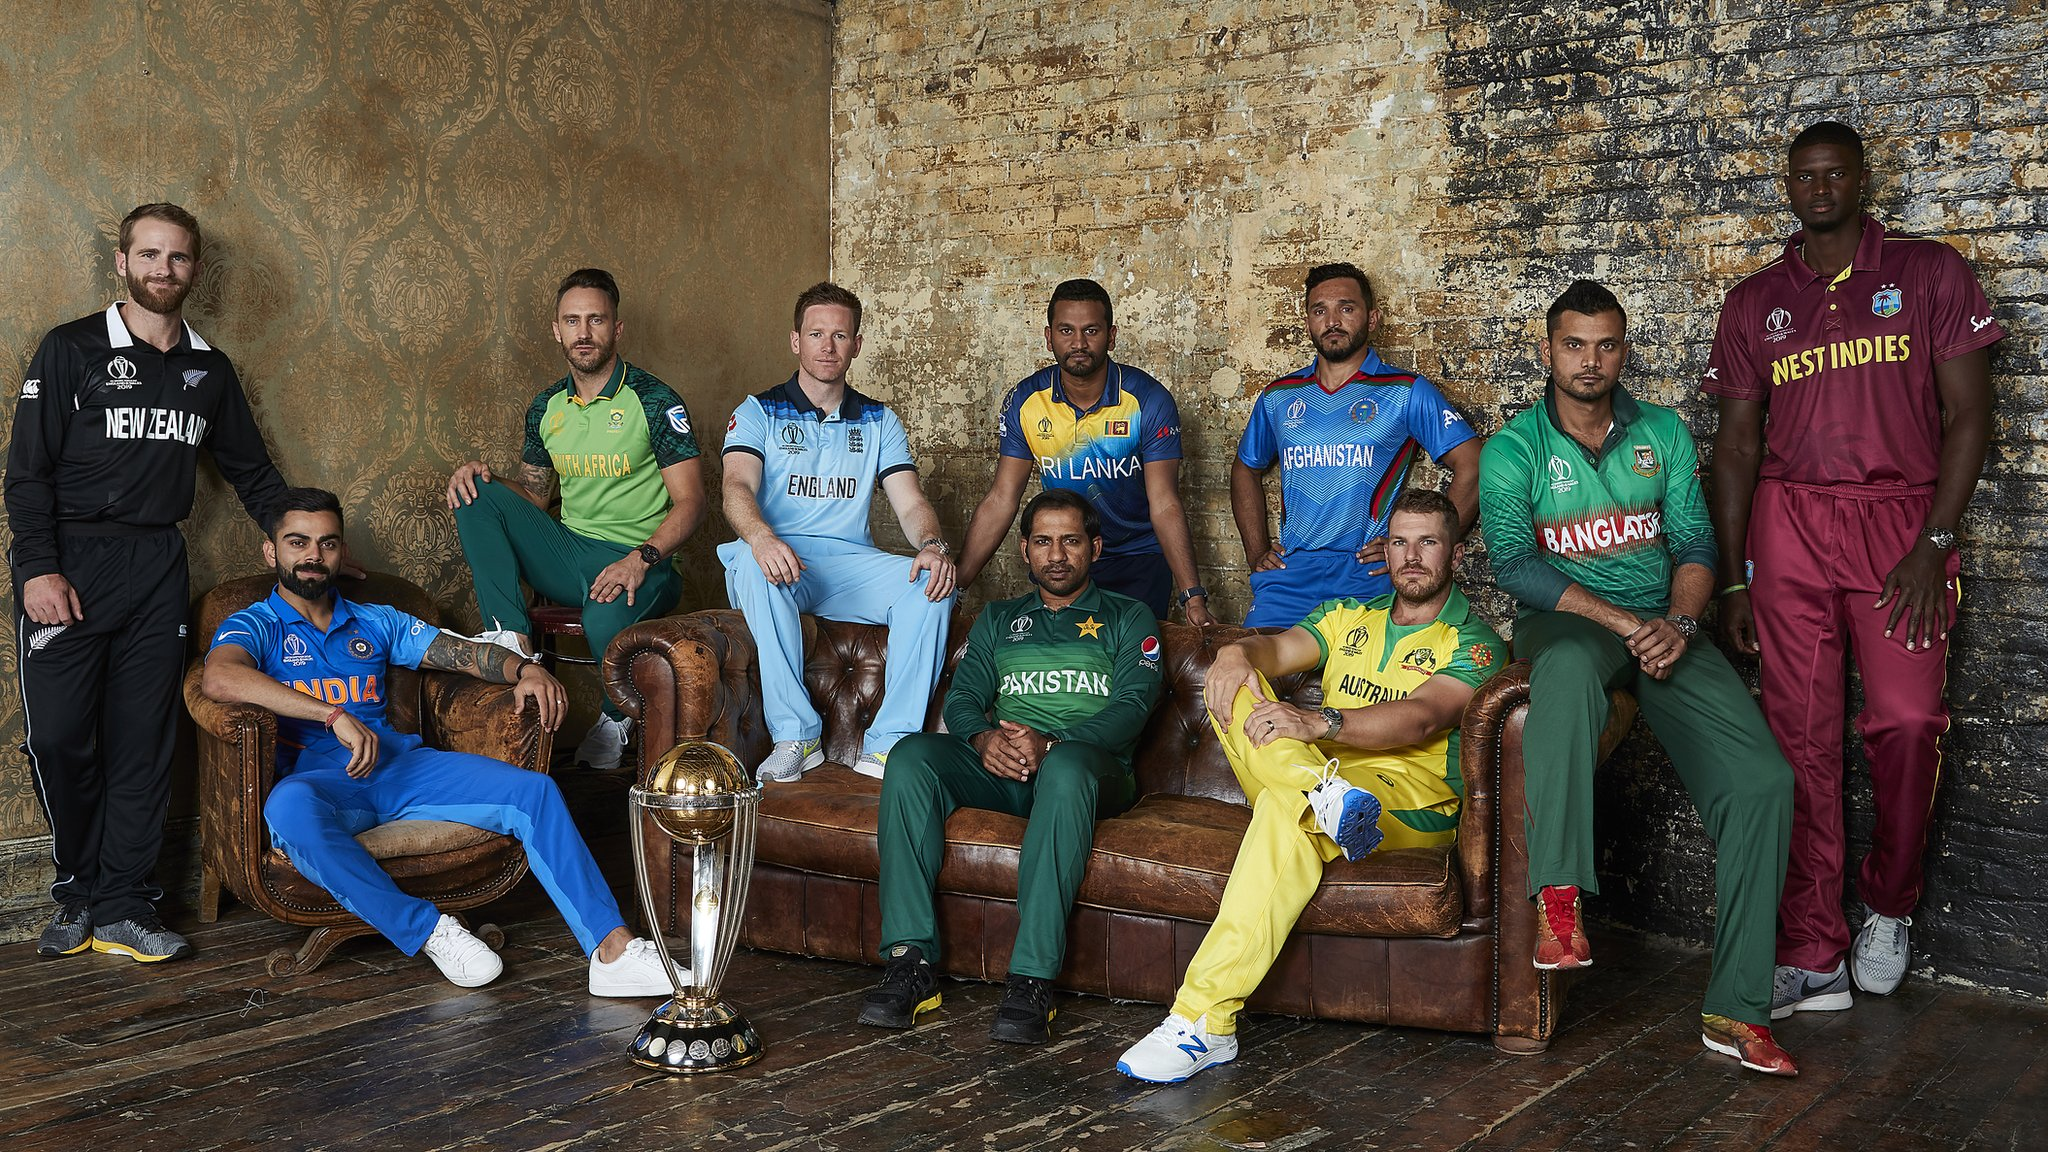 How to watch, listen and follow Cricket World Cup on the BBC Sport website